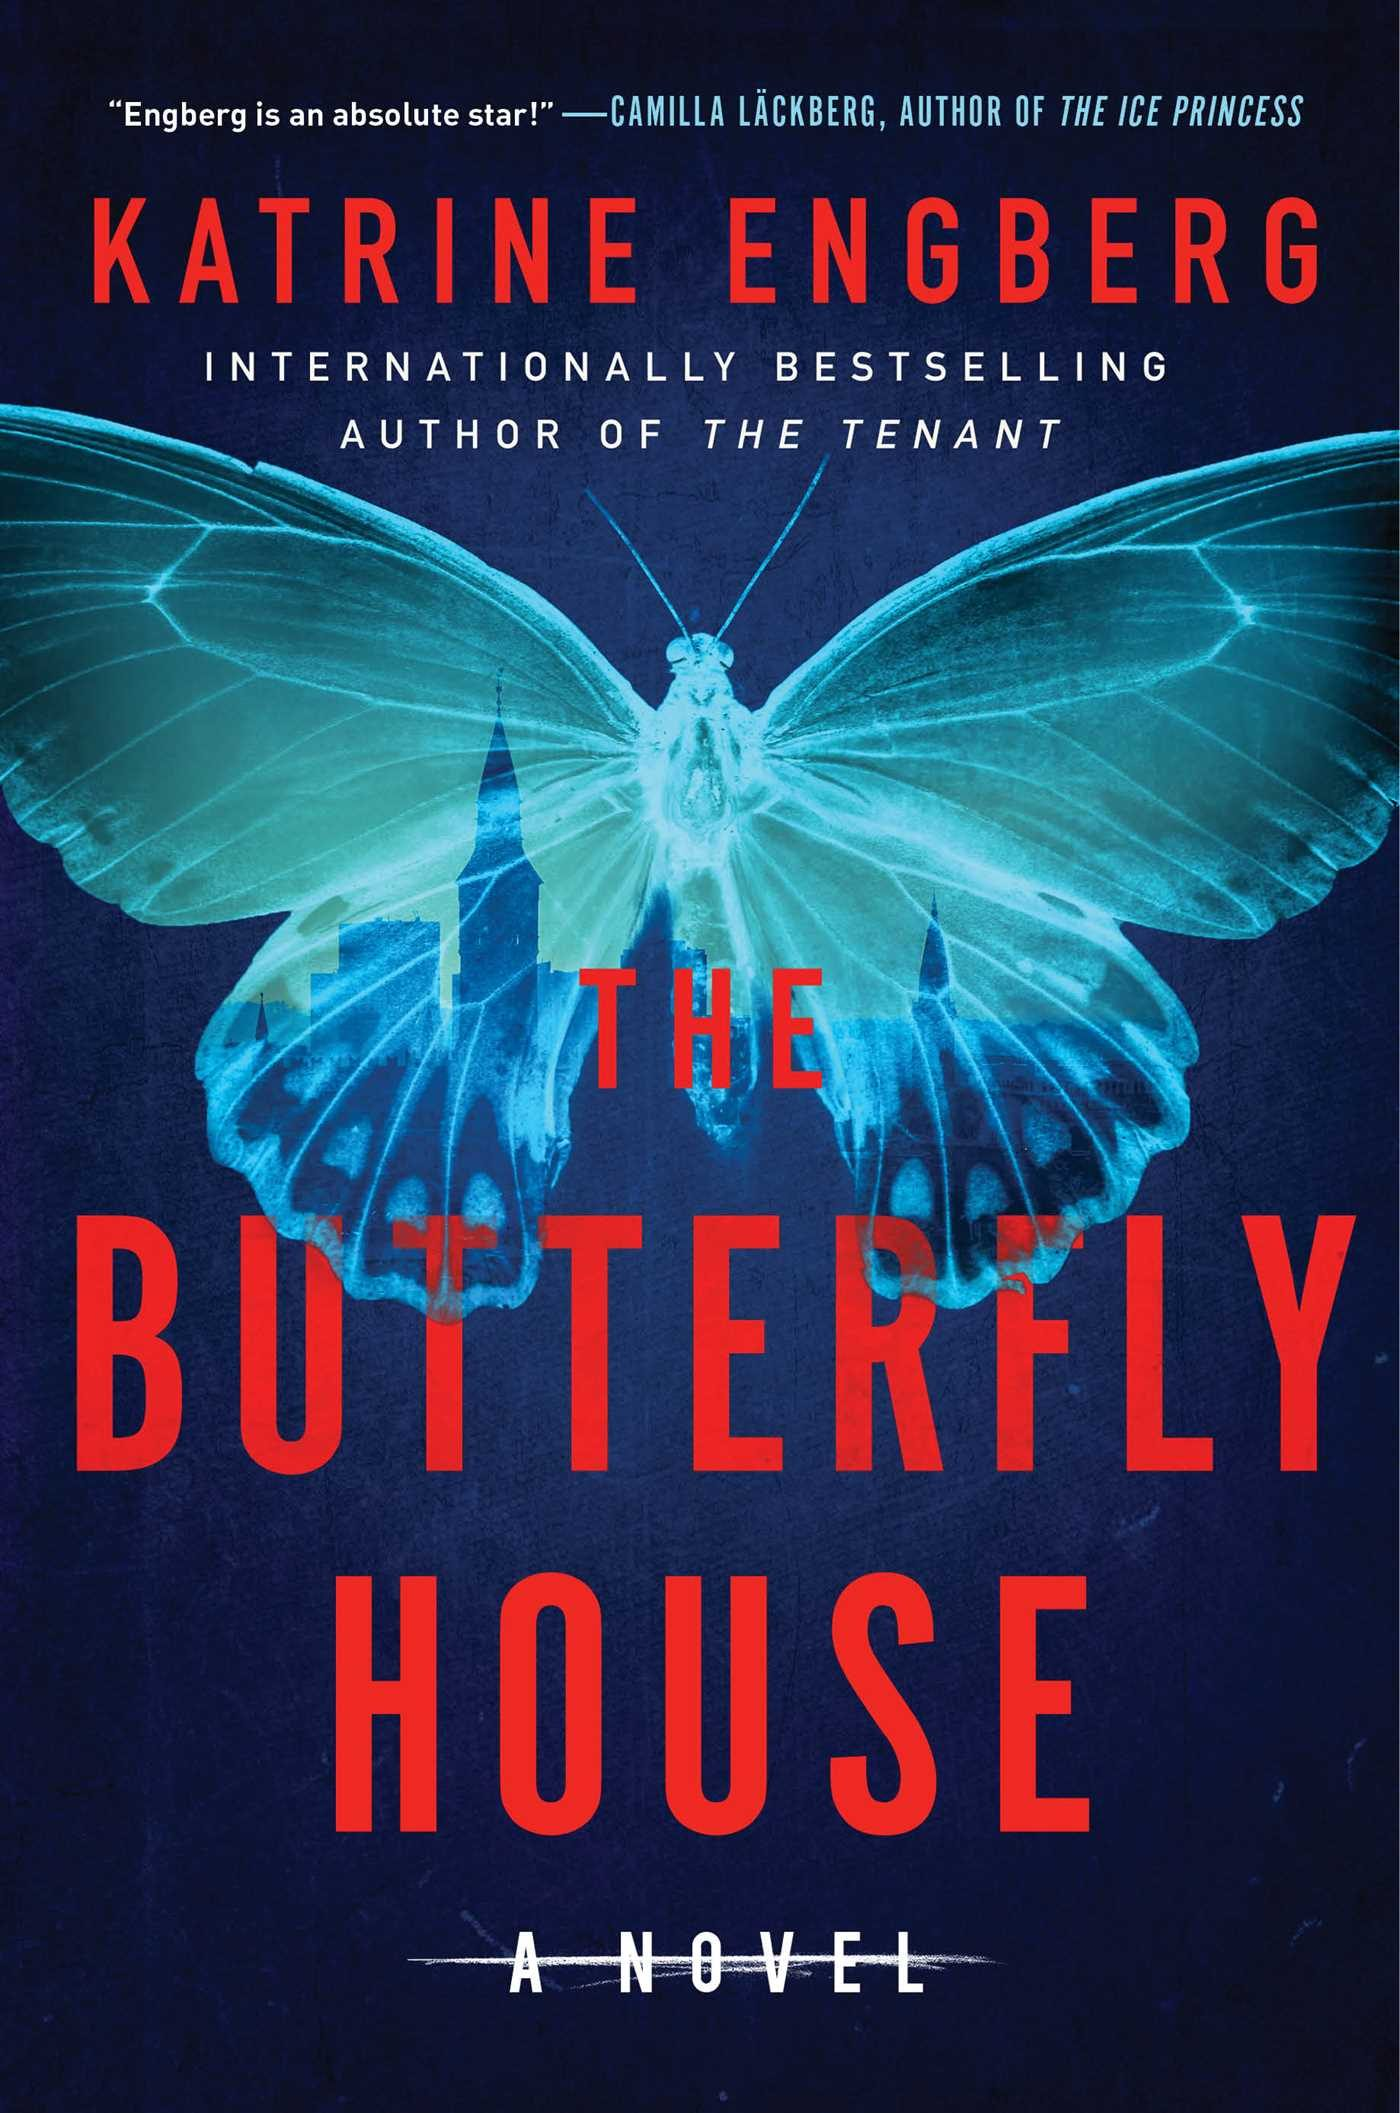 When Does The Butterfly House (Korner And Werner 2) By Katrine Engberg Release? 2021 Mystery Thriller Releases